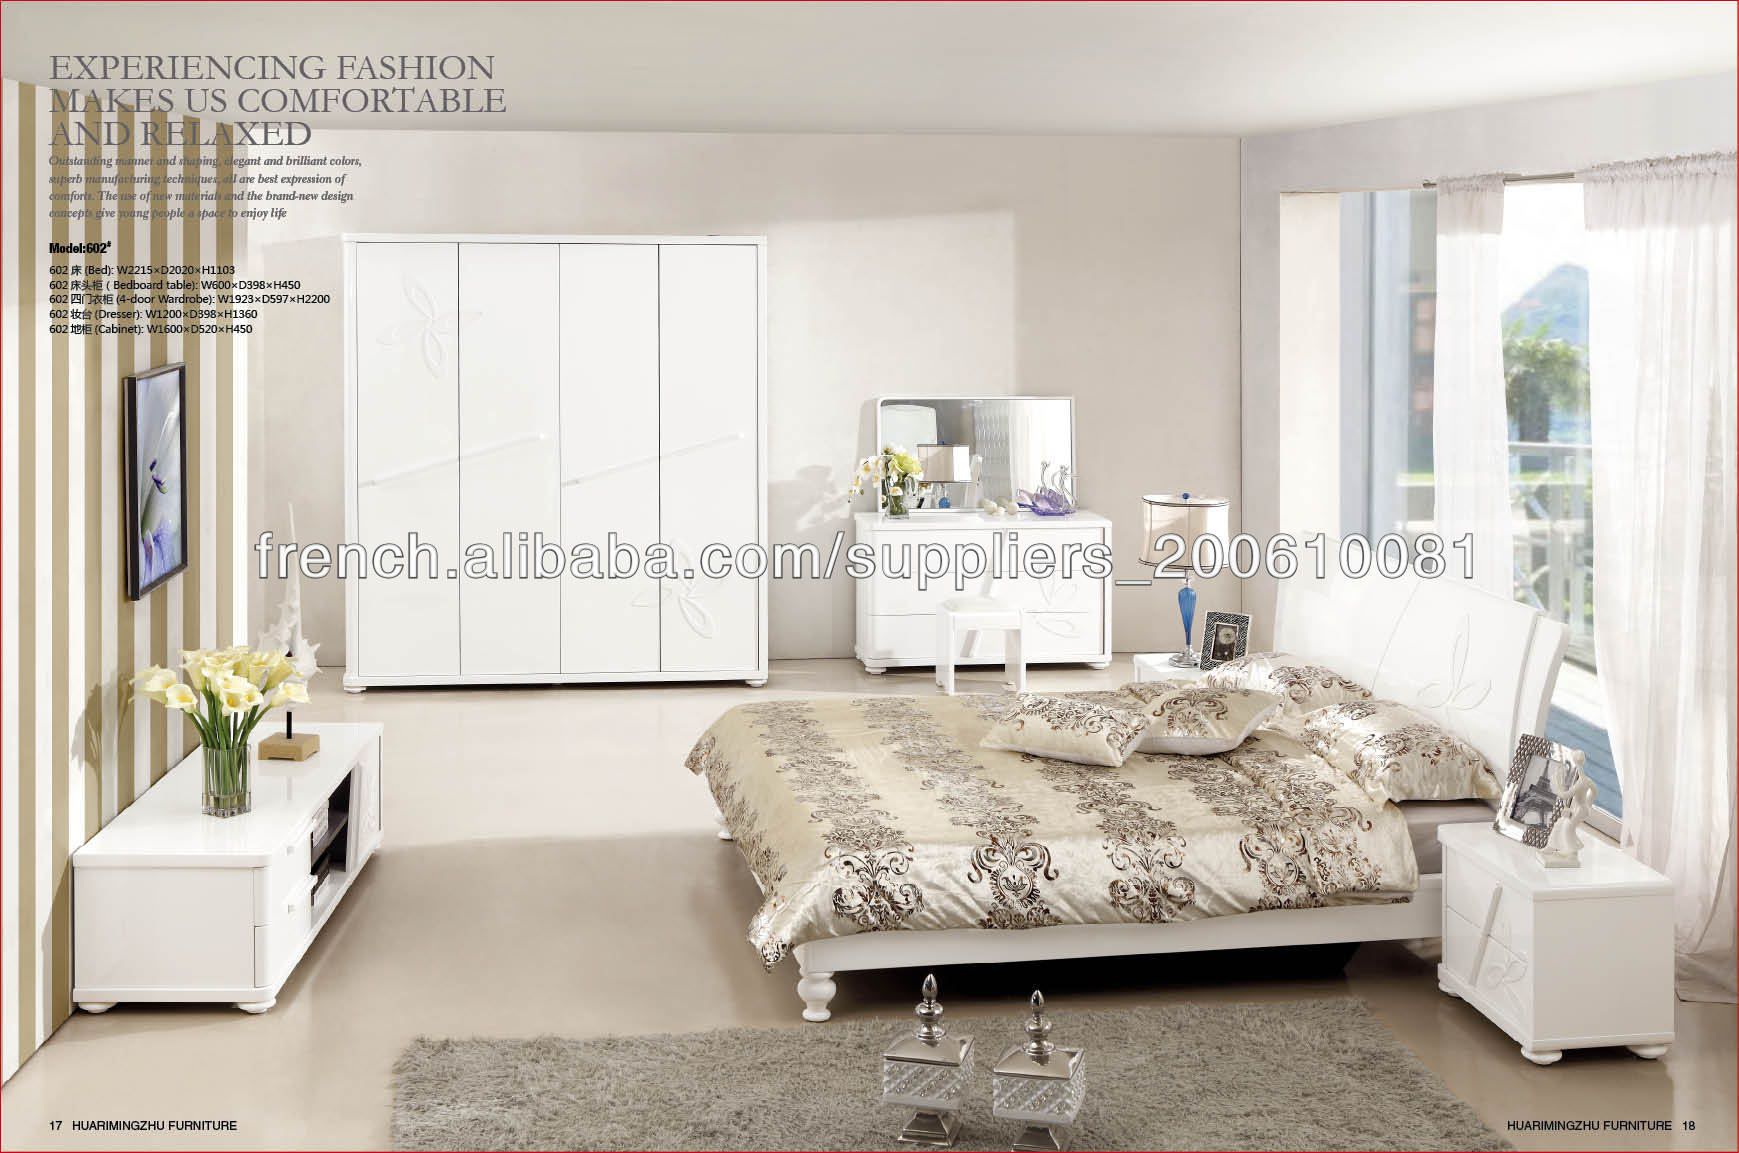 chambre coucher moderne blanc ensemble de meubles lots de literie id du produit 500000165976. Black Bedroom Furniture Sets. Home Design Ideas